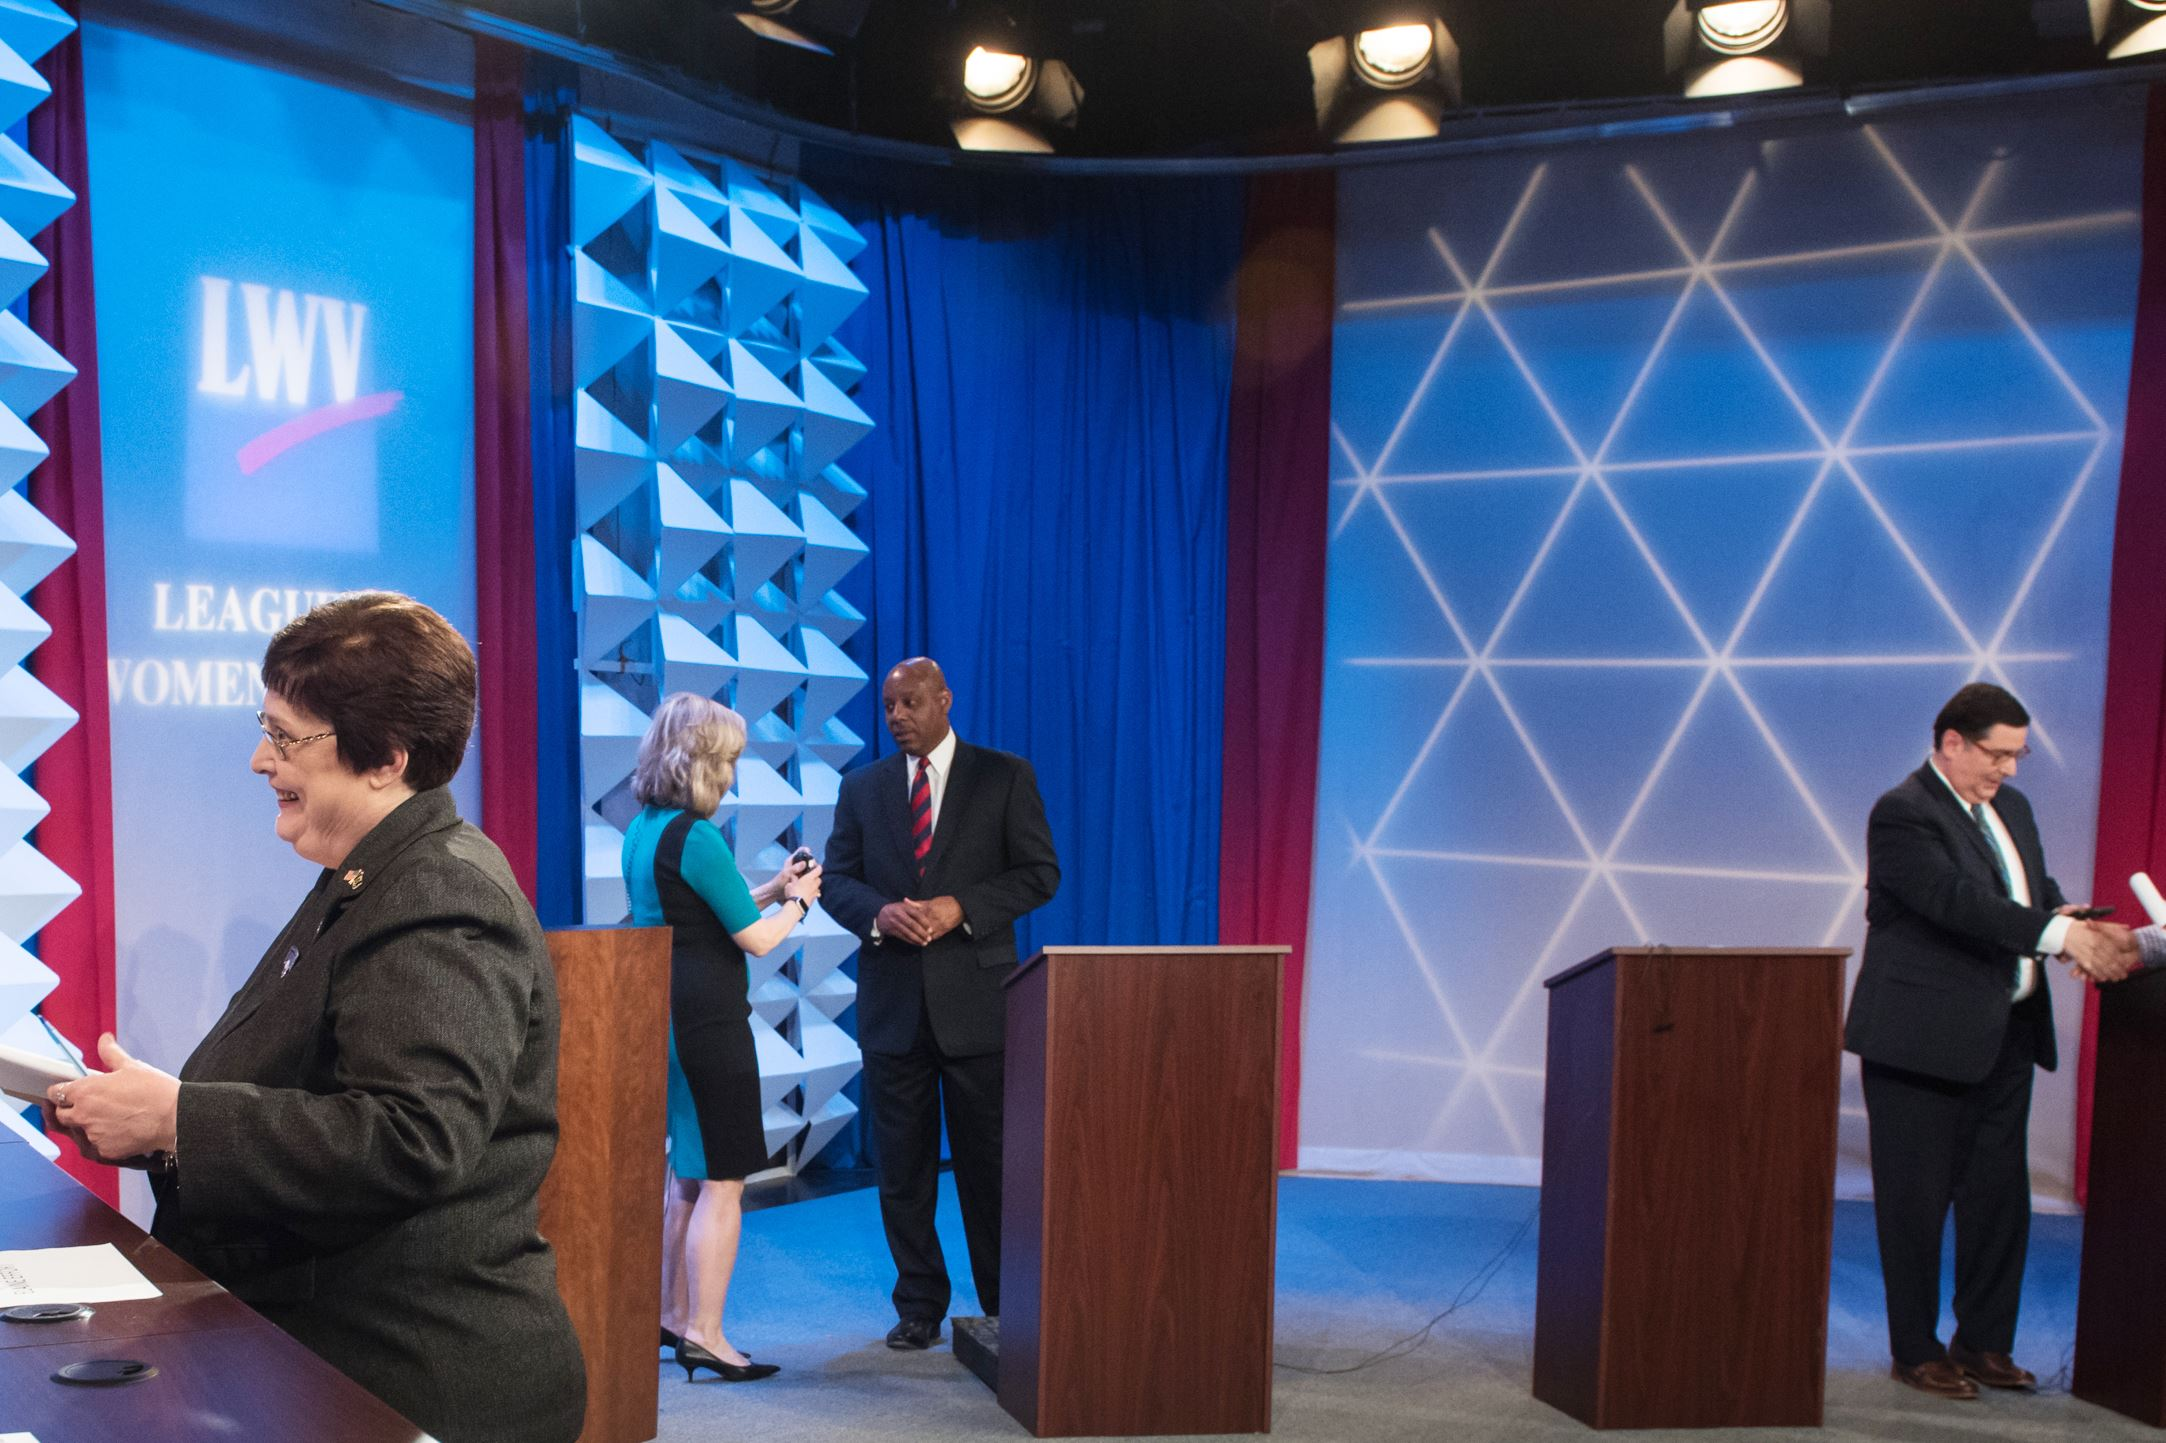 WTAE 2017 Pittsburgh Mayoral Debate City Councilwoman Darlene M. Harris of Zone 1 talks to debate moderators Wednesday after the WTAE 2017 mayoral debate at the station's studios in Wilkinsburg, Pa. Behind her, fellow Democratic contenders Rev. John Welch, back center, and Pittsburgh Mayor Bill Peduto, back right, talk to members of the media.